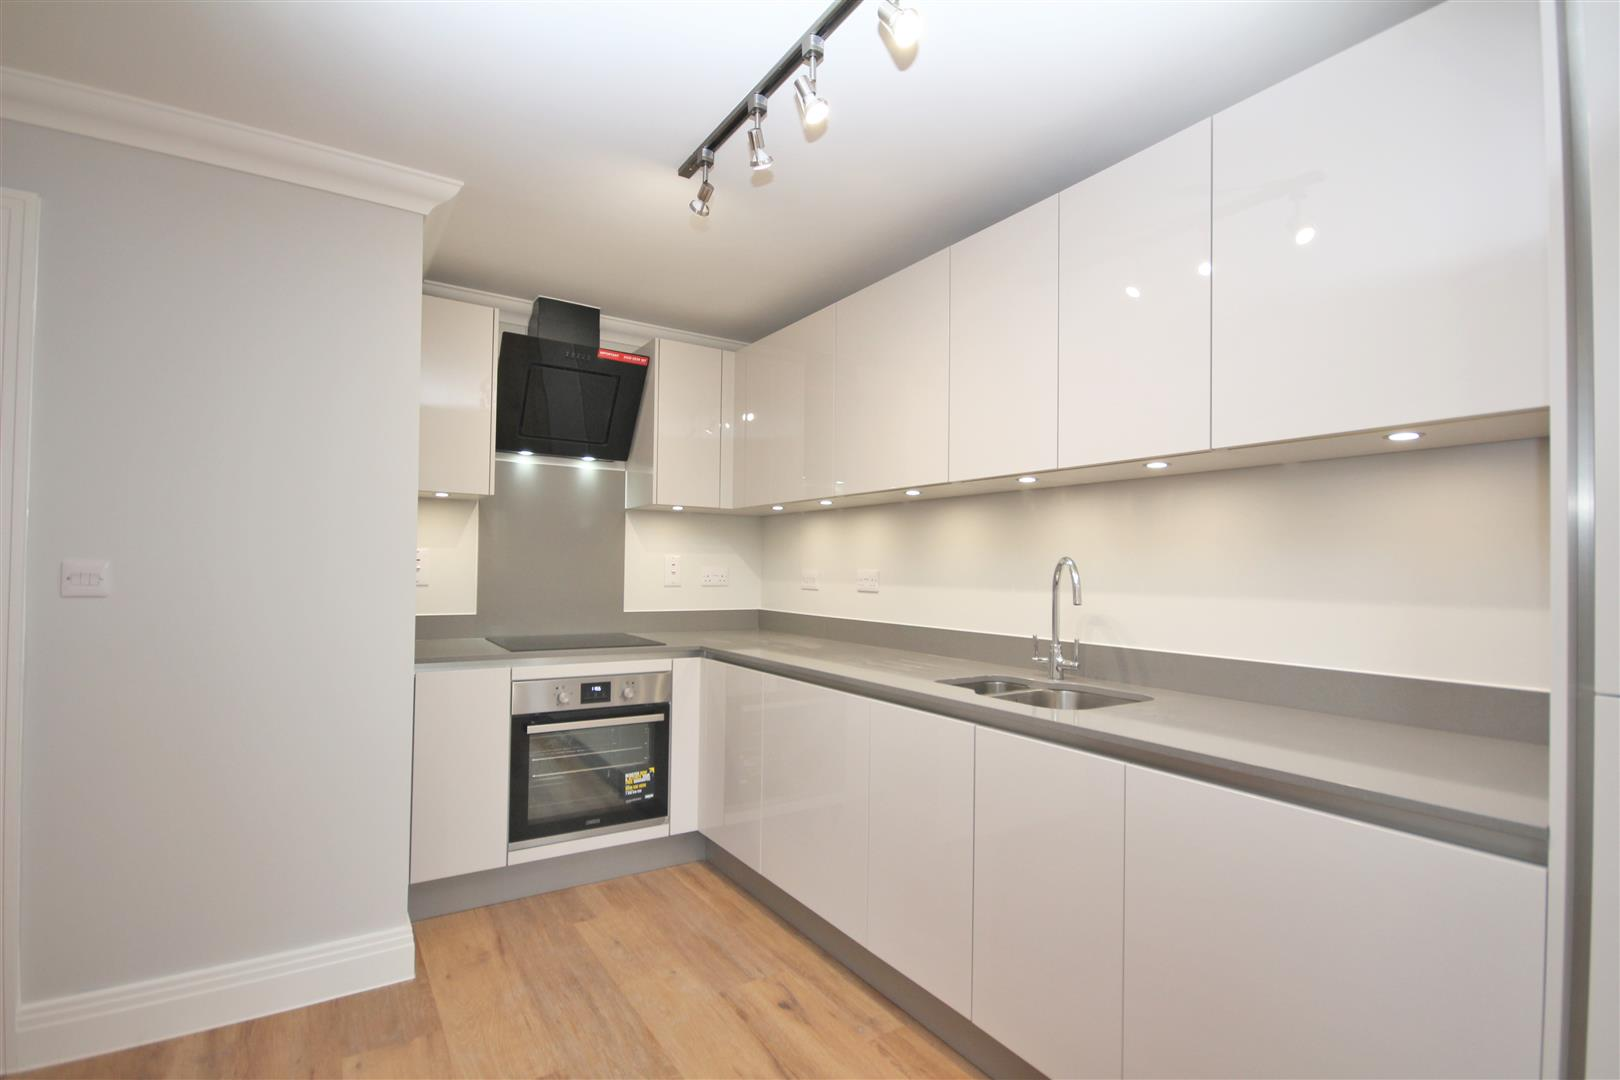 2 bed Flat to rent - (Property Image 2)